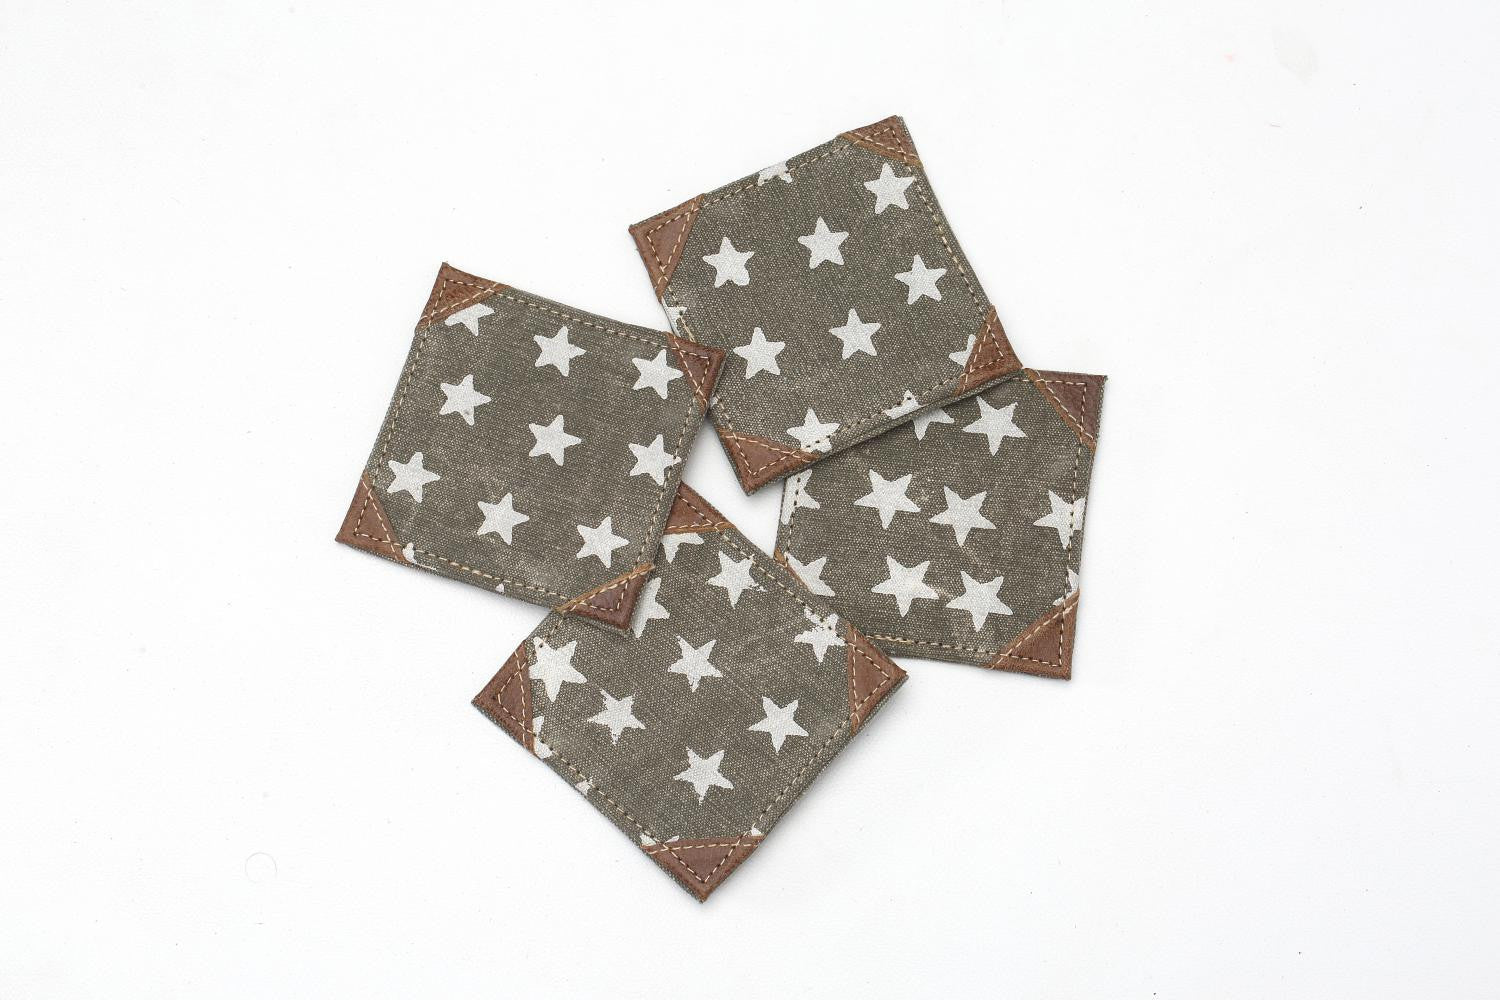 """FREEDOM OF STAR"" COASTER S/4 PCS"